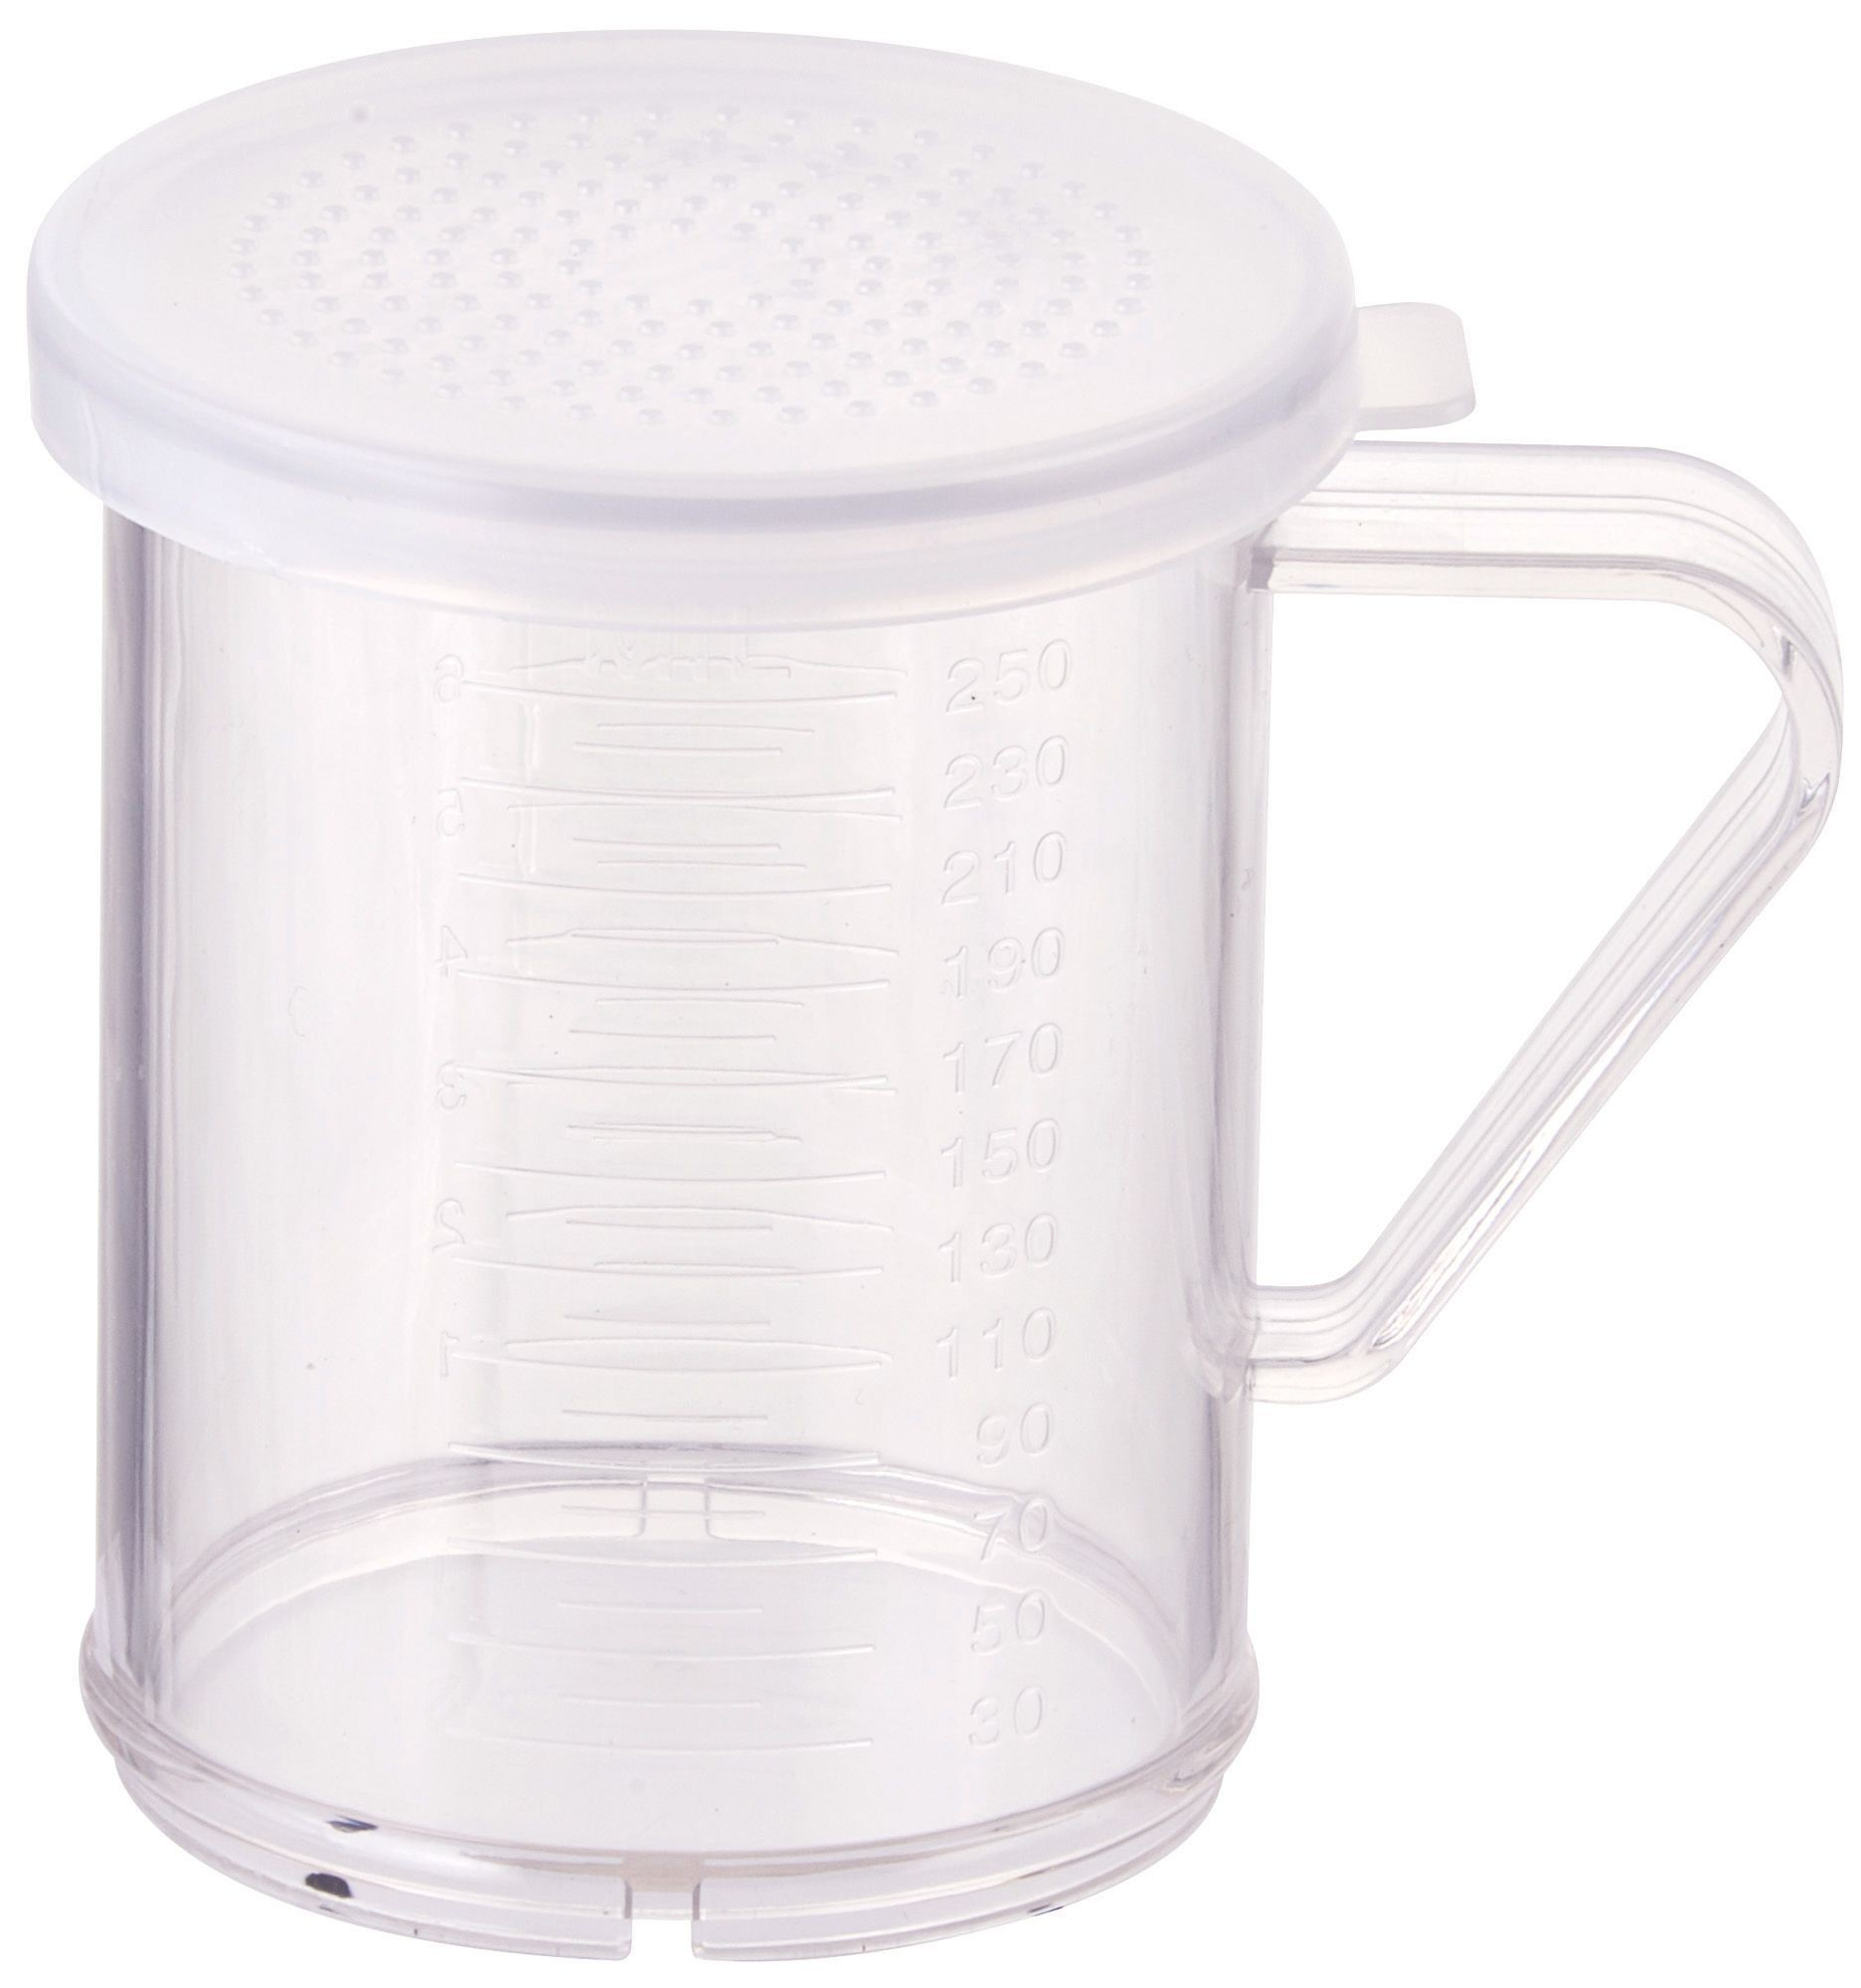 Polycarbonate 10 Oz. Shaker/Dredge With Three Snap-On Lids